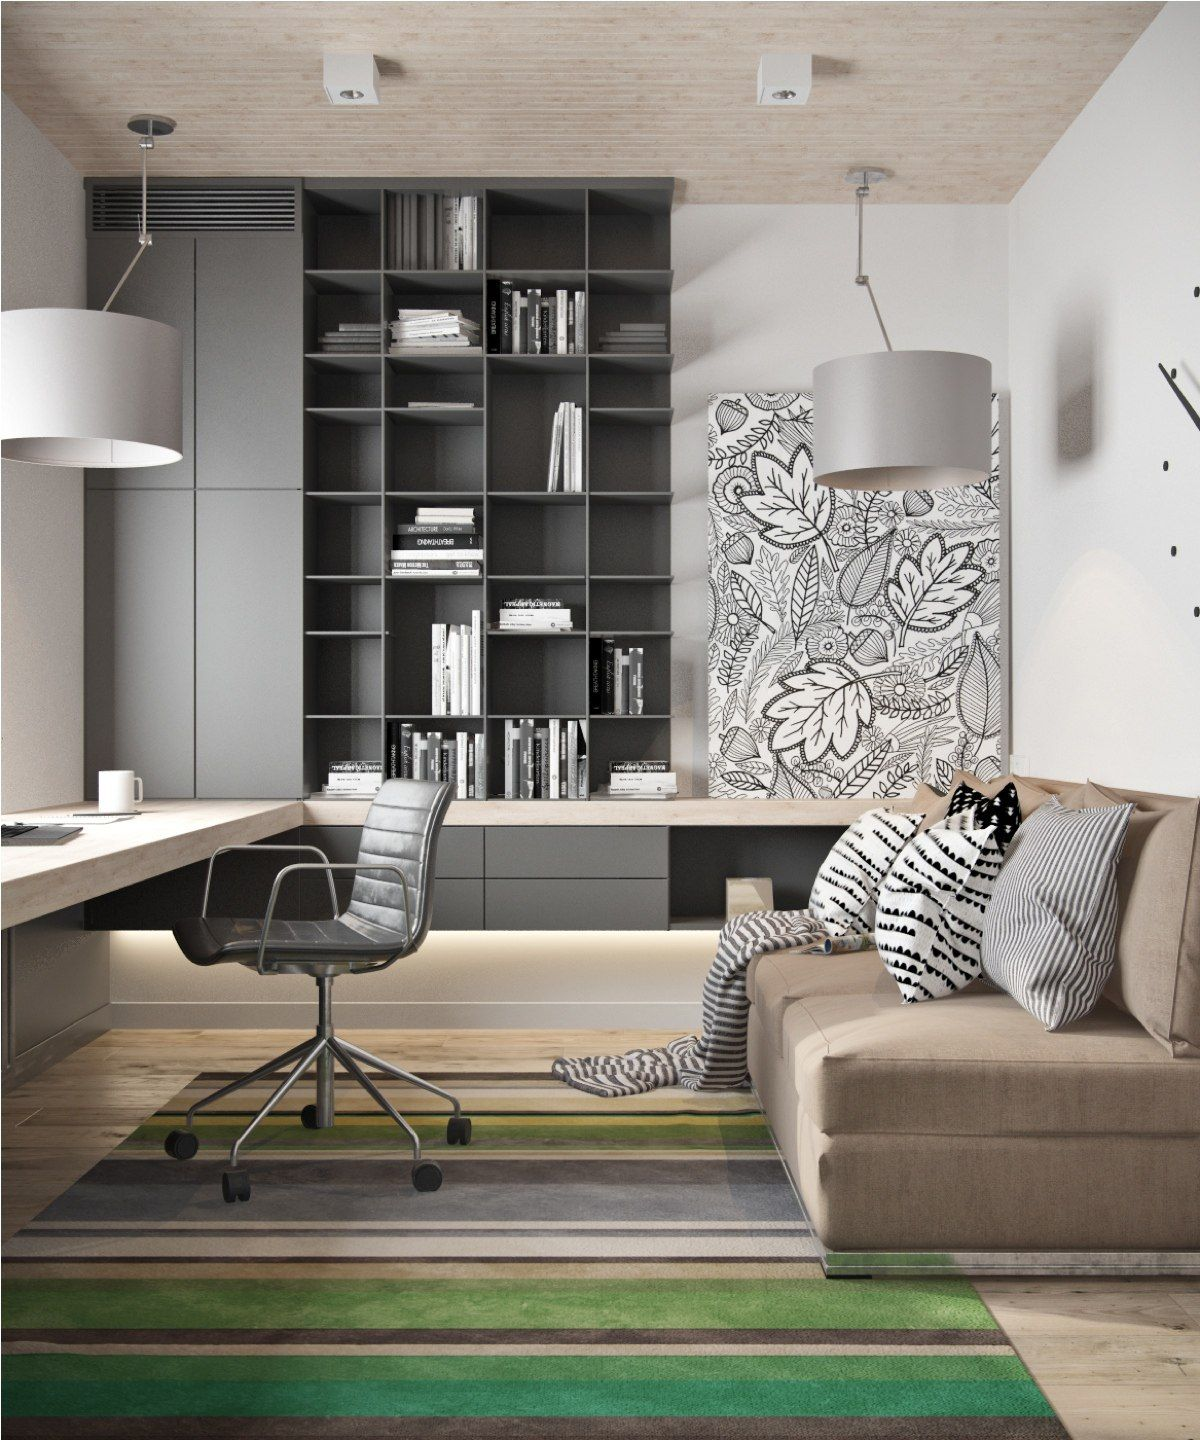 Marvelous Expert Advice: Home Office Design Tips From Interior Designers